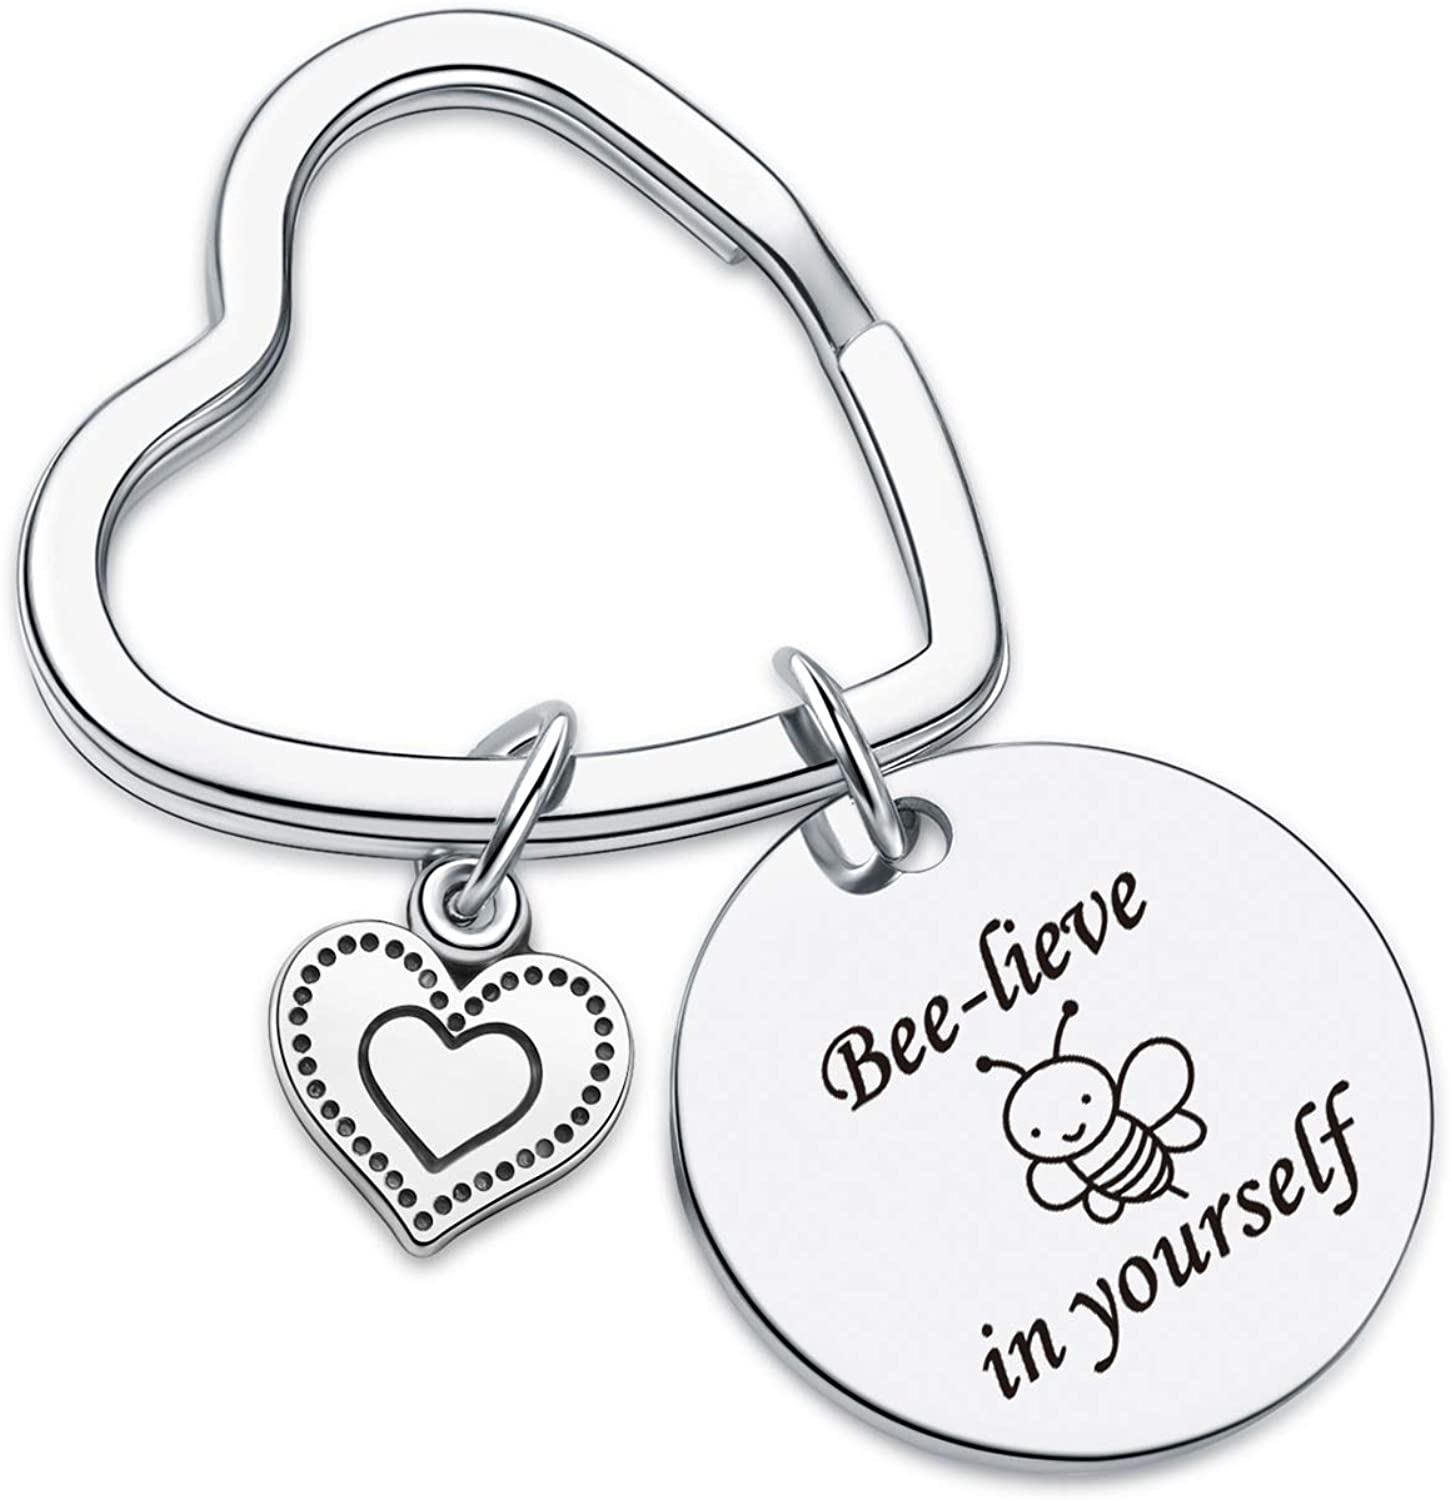 Inspirational Jewelry Best Friend Gift Teachers Day Gift Bee Lover JewelryCoworker family